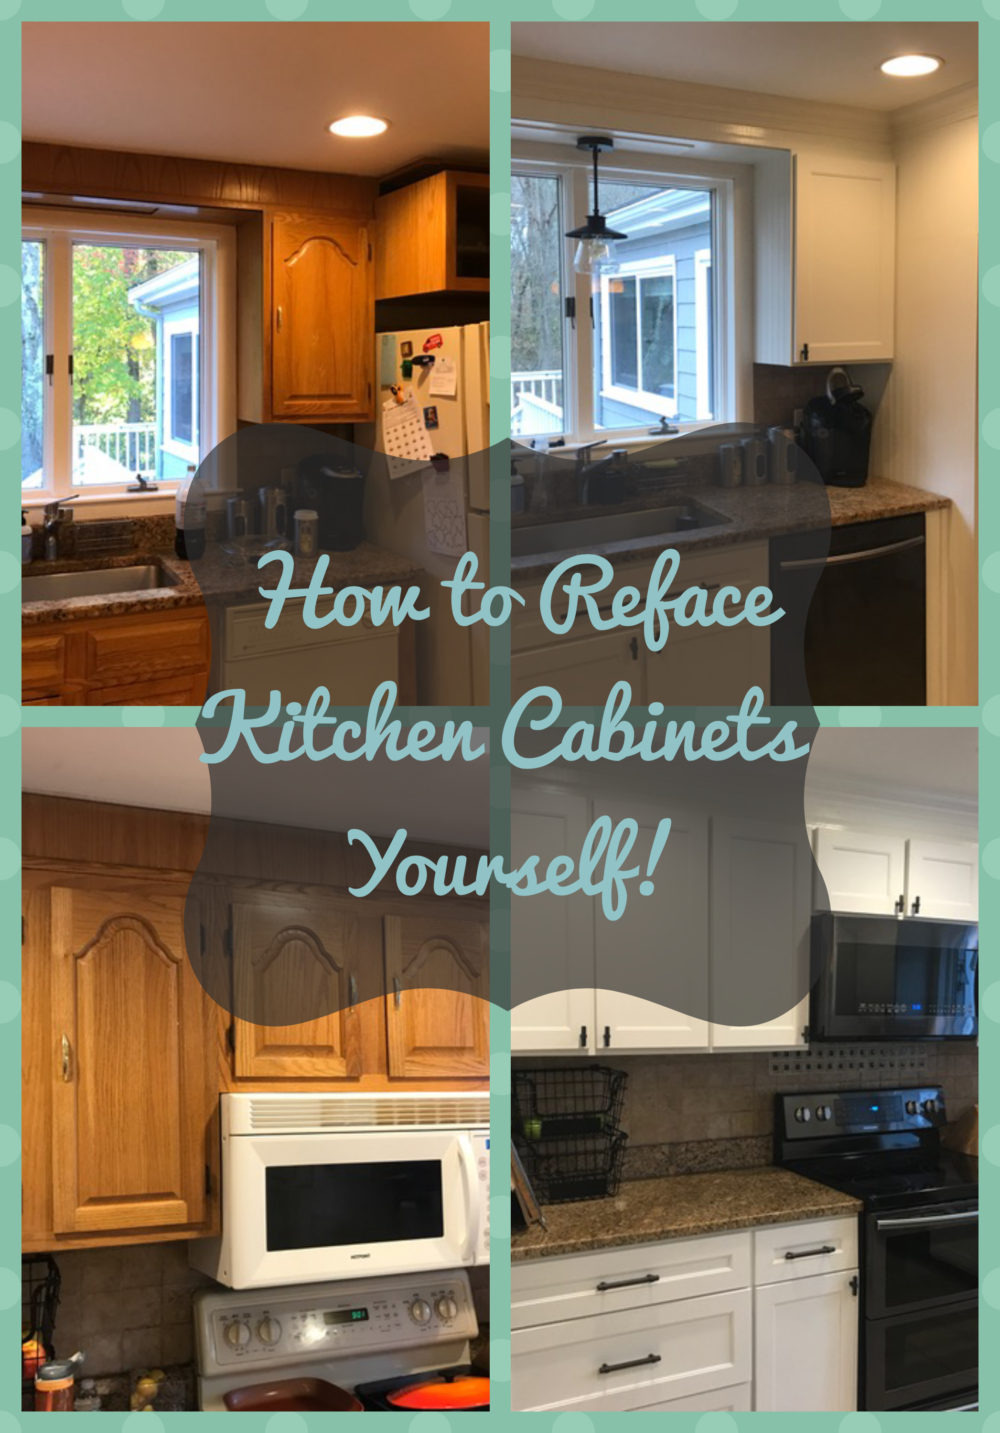 Refinishing Cabinet Doors Awesome Diy Kitchen Cabinet Refacing Rocky Canyon Rustic